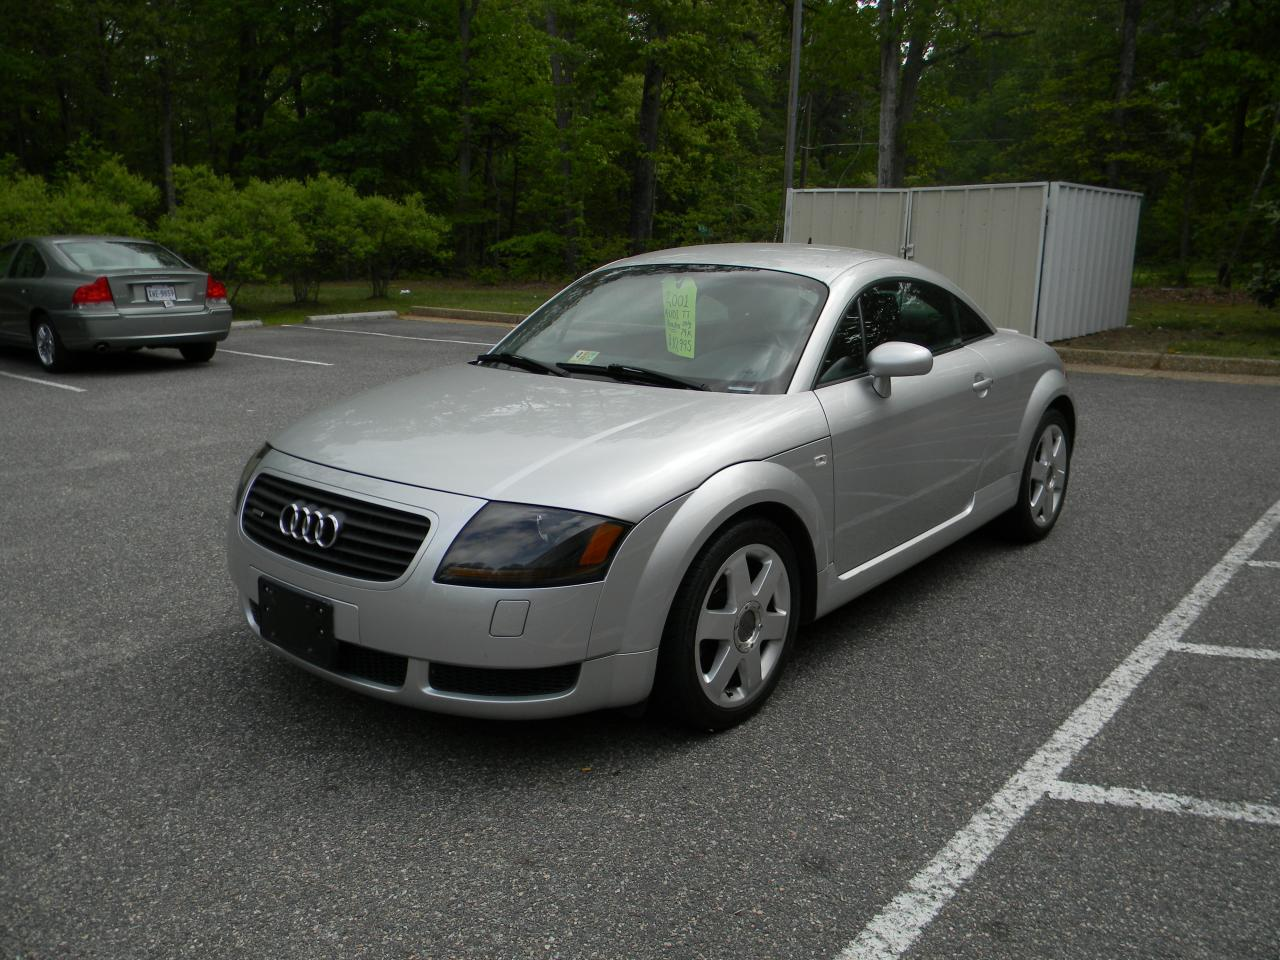 2001 audi tt information and photos zombiedrive. Black Bedroom Furniture Sets. Home Design Ideas